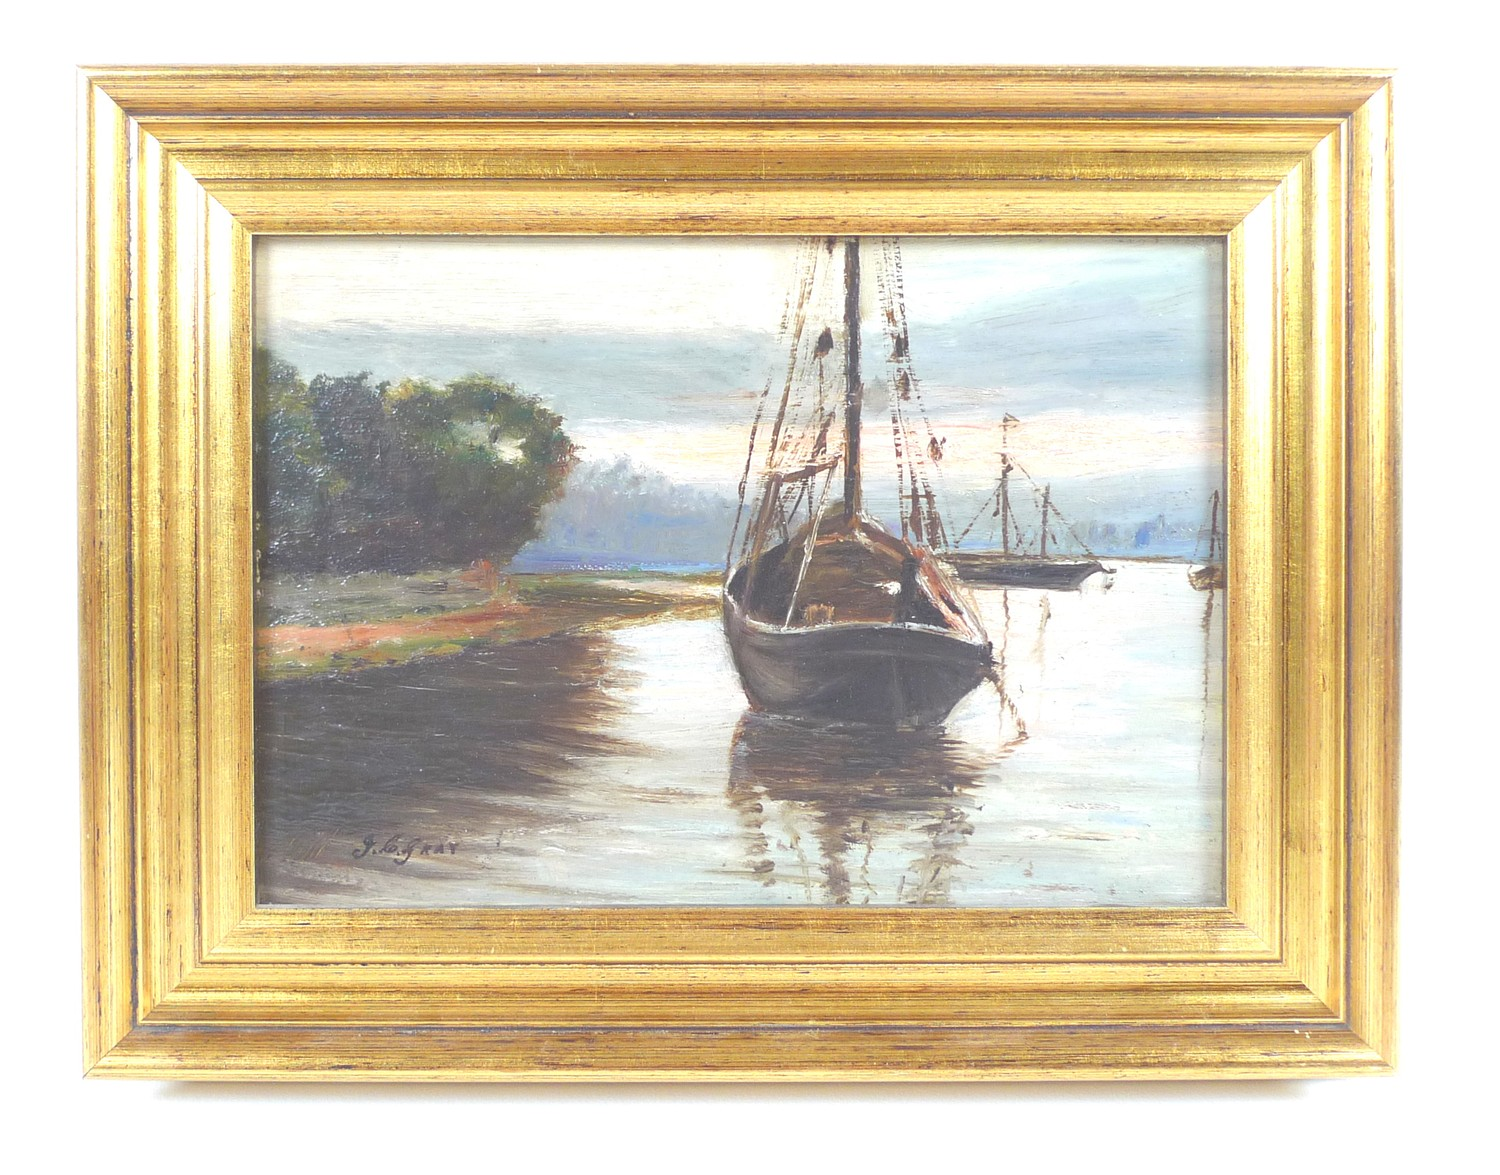 John C. Gray (Scottish, circa 1880-1945): boats on a river, signed lower left, oil on board, 16.5 by - Image 2 of 5